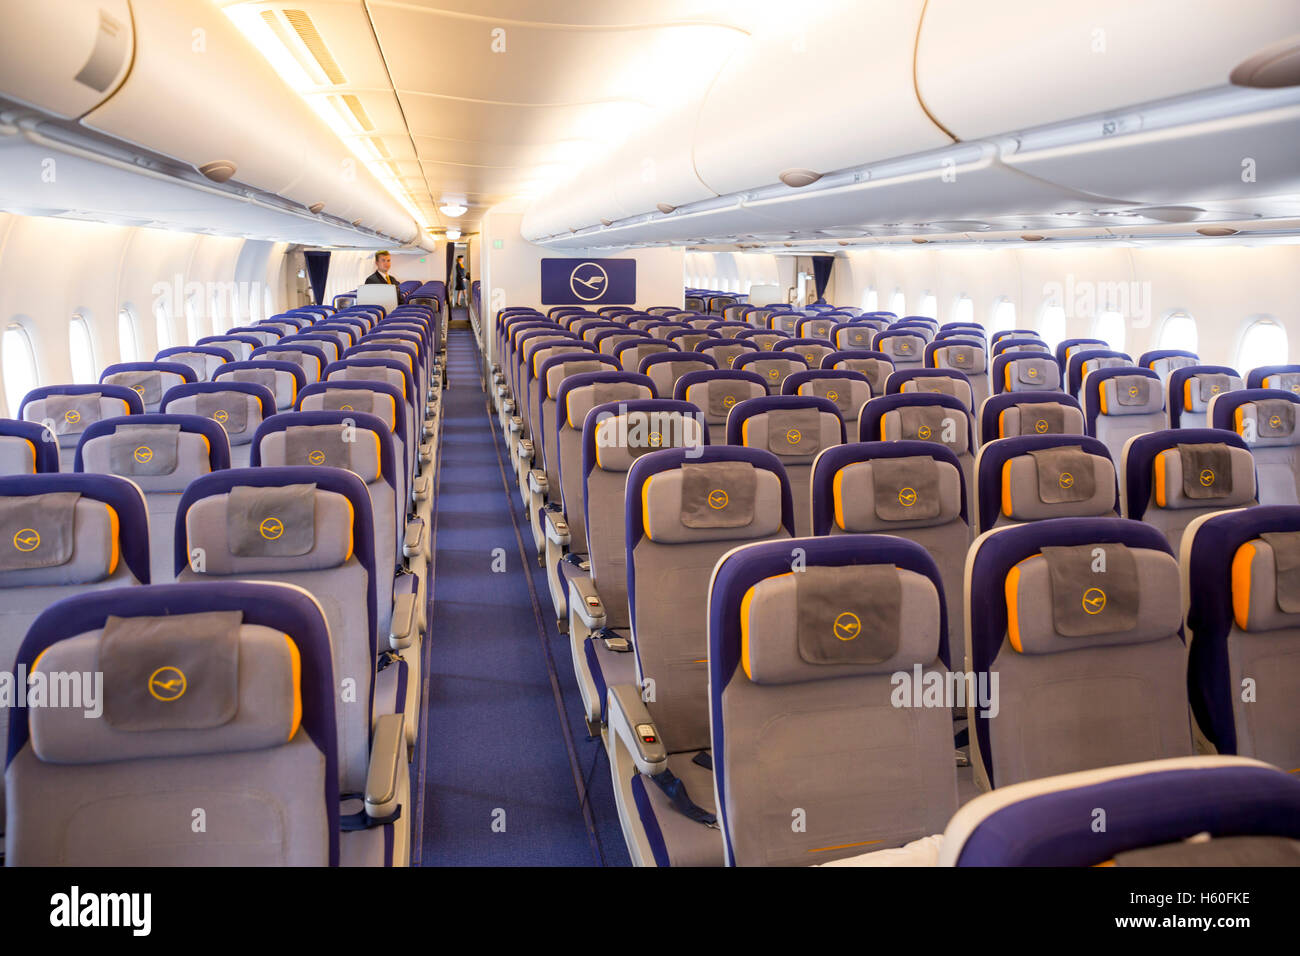 inside lufthansa airbus a380 800 sofia bulgaria october 16 2016 the inside of 755